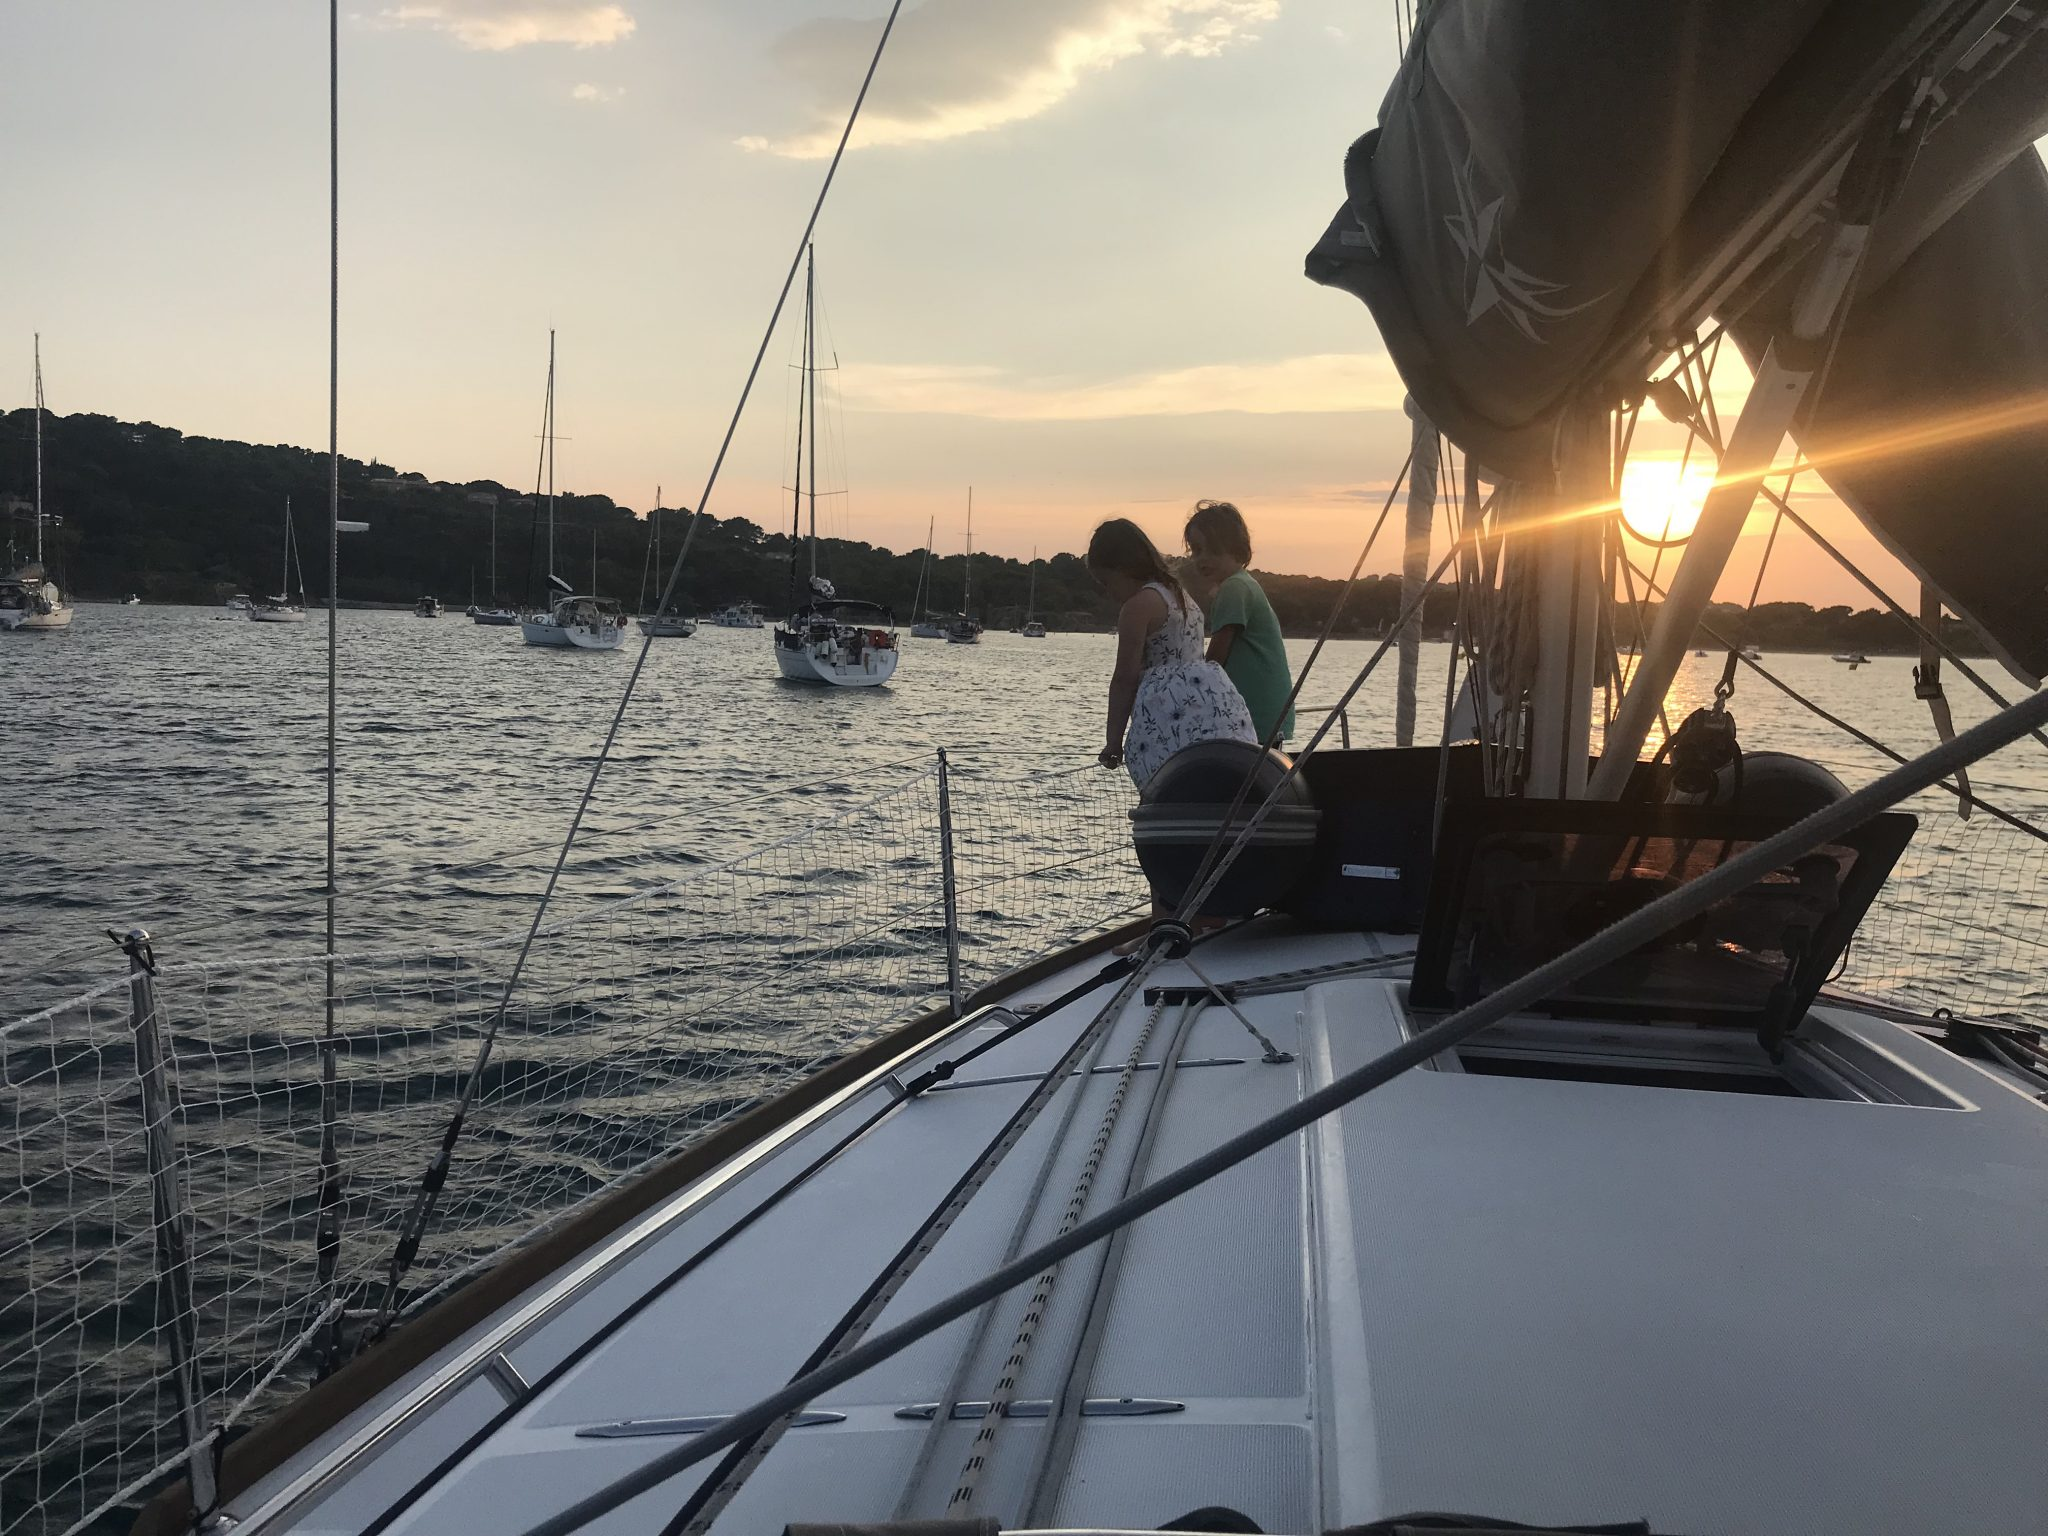 Summer sailing holiday